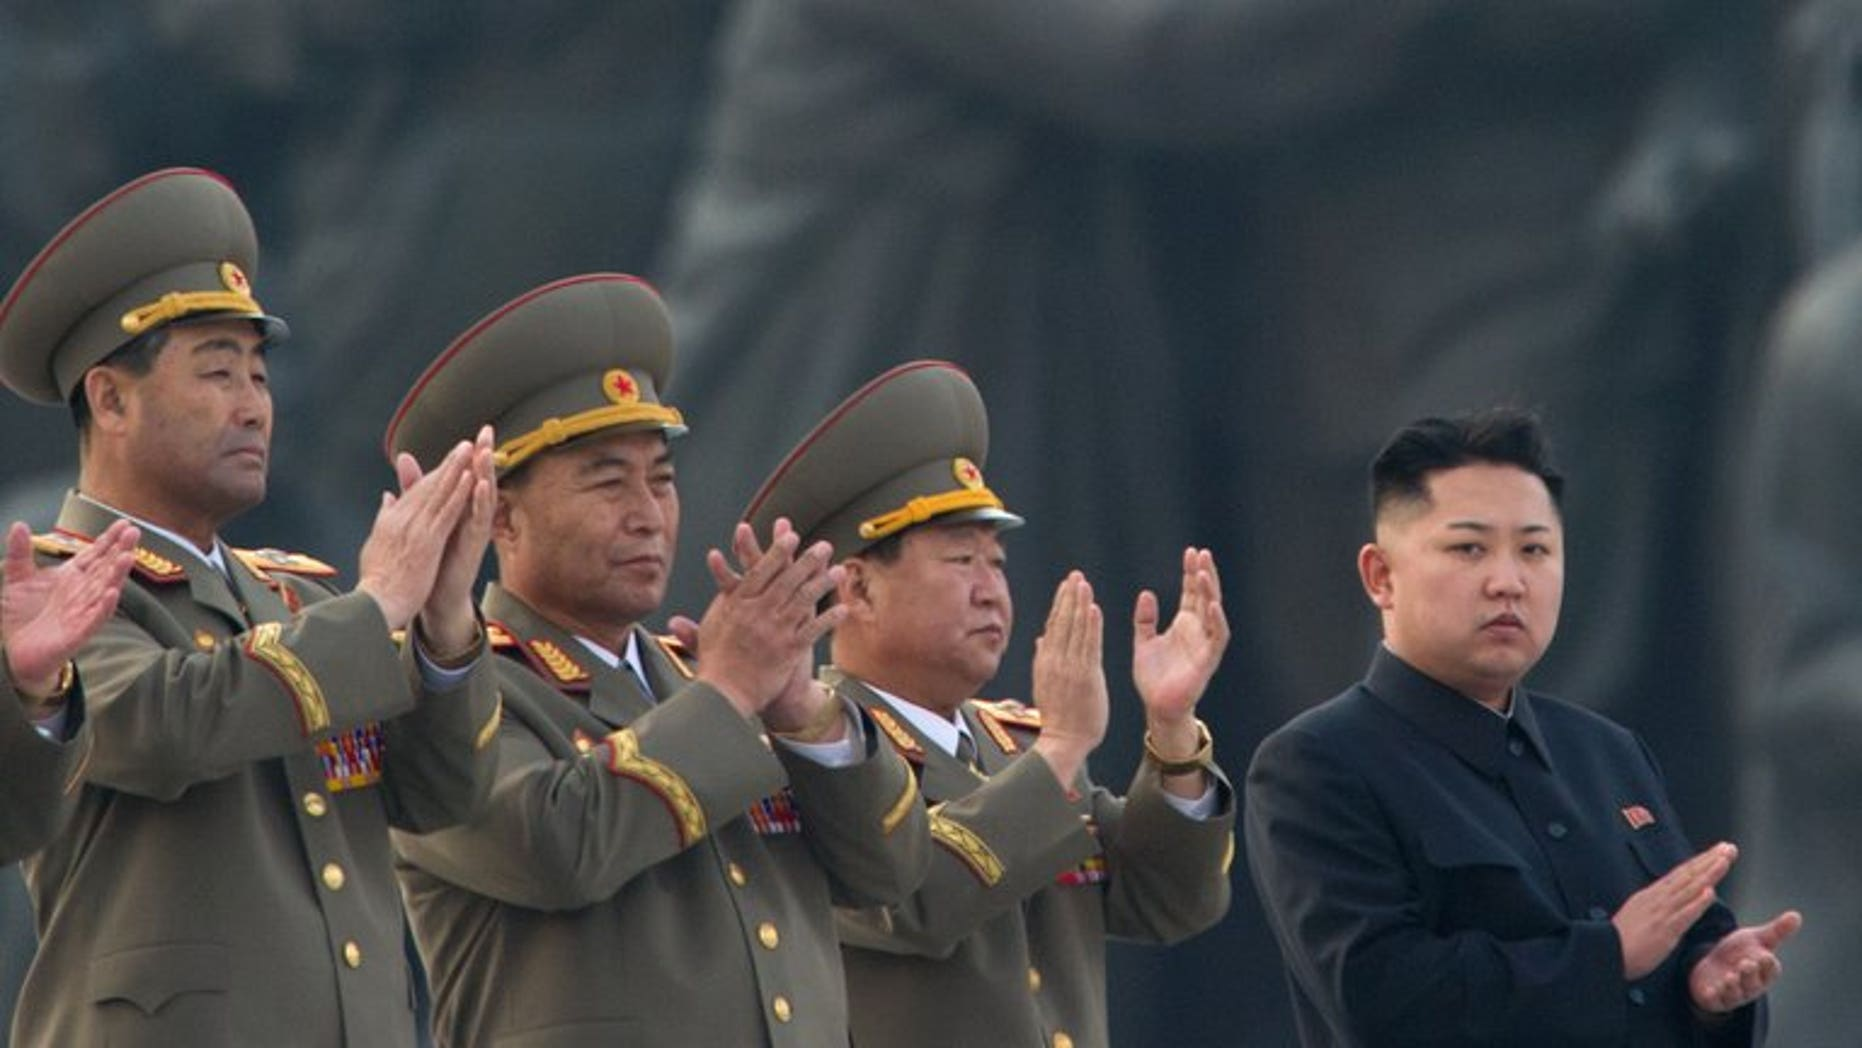 North Korean leader Kim Jong-Un (right) claps during the unveiling ceremony of two statues of former leaders Kim Il-Sung and Kim Jong-Il in Pyongyang on April 13, 2012. North Korea on Wednesday restored its official hotline with South Korea and announced it would let the South's businessmen visit a shuttered joint industrial zone, Seoul officials said.